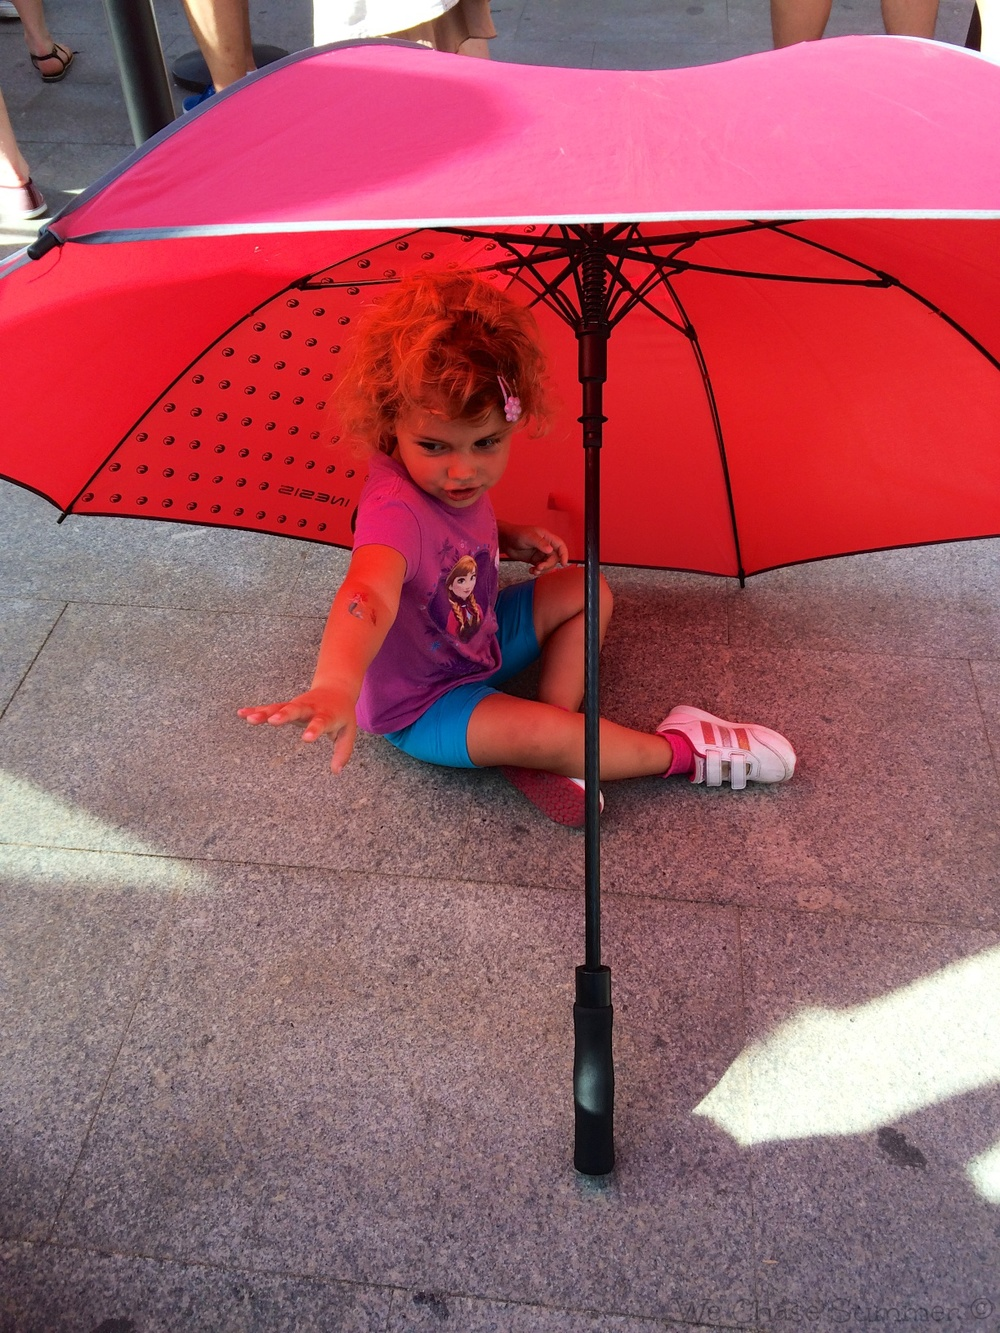 Hannah made a tent out of an umbrella to keep away from the hot sun